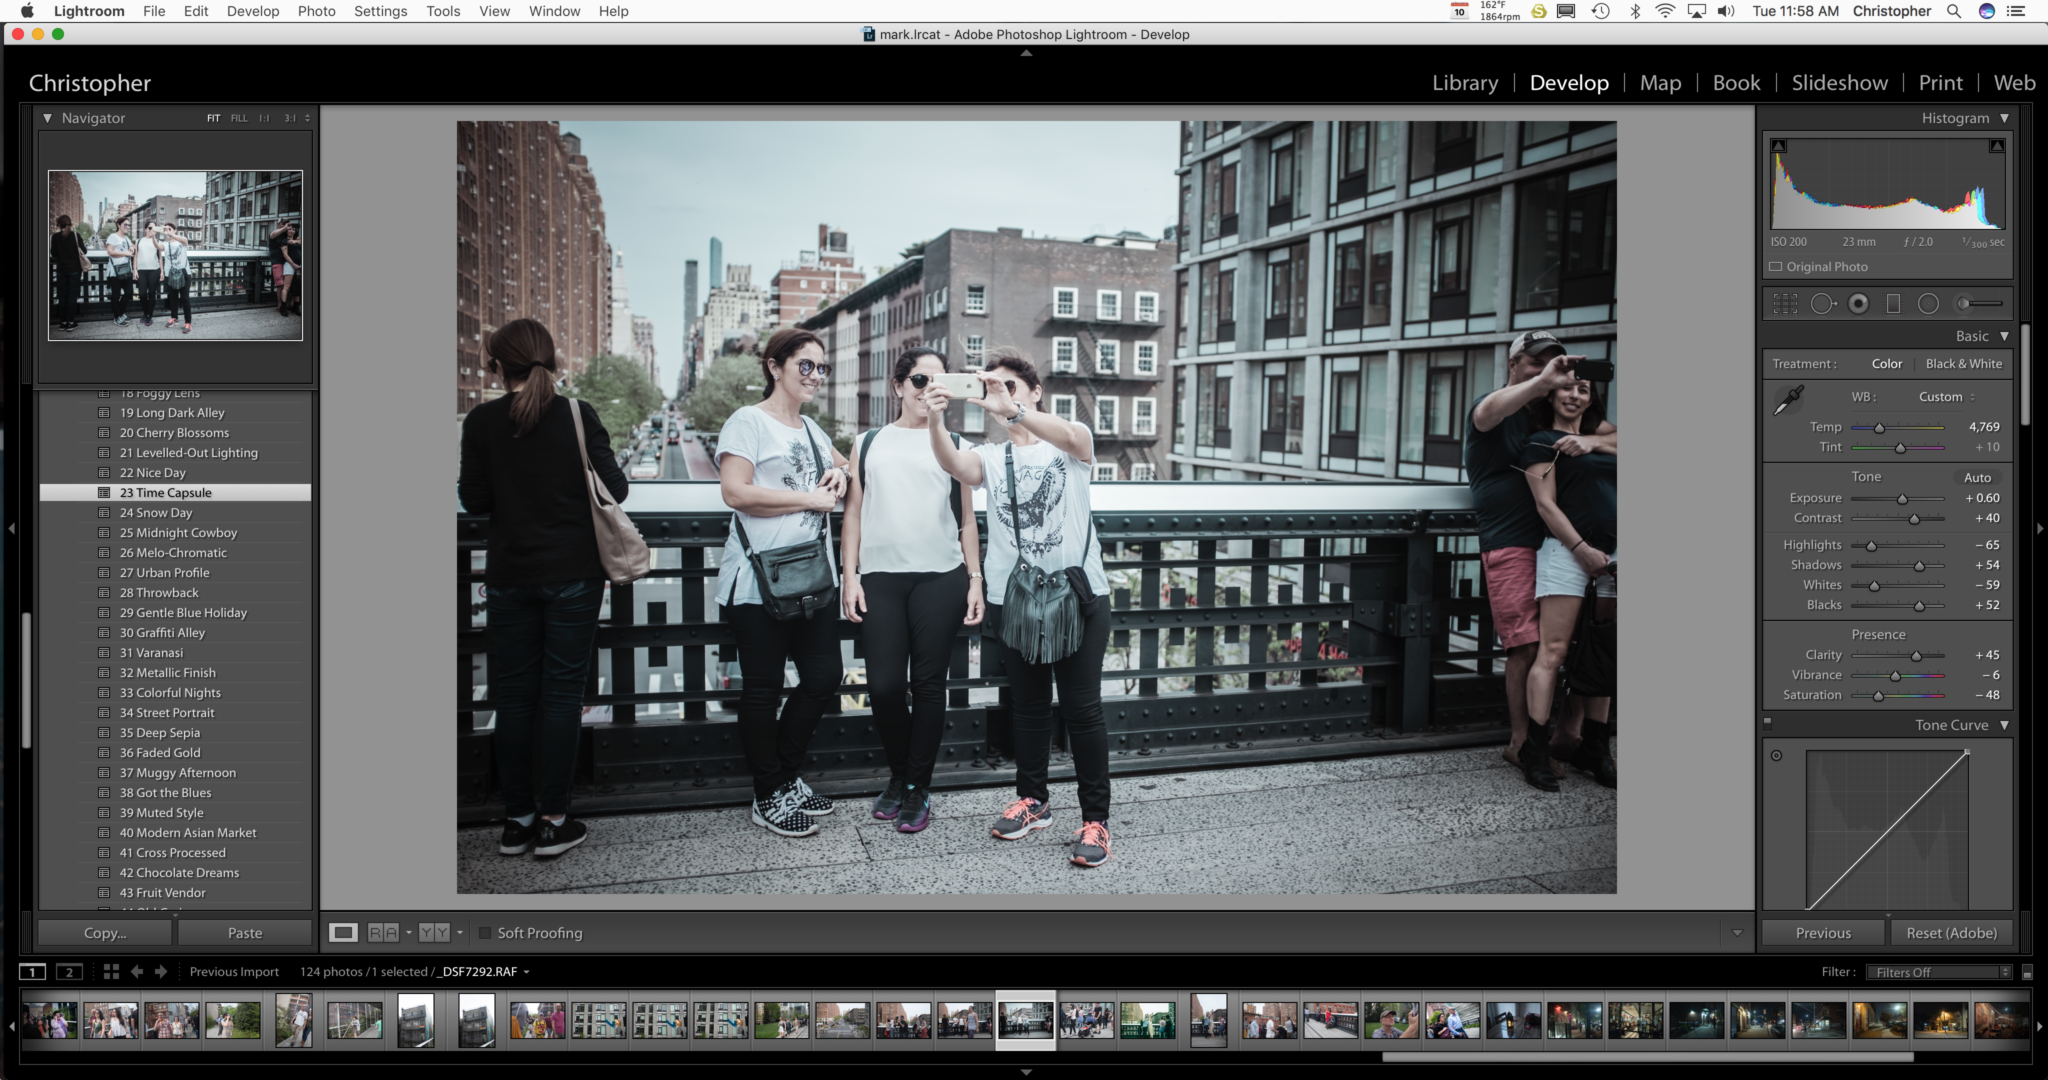 Review: Richard Schneider's Street Photographers Lightroom Presets